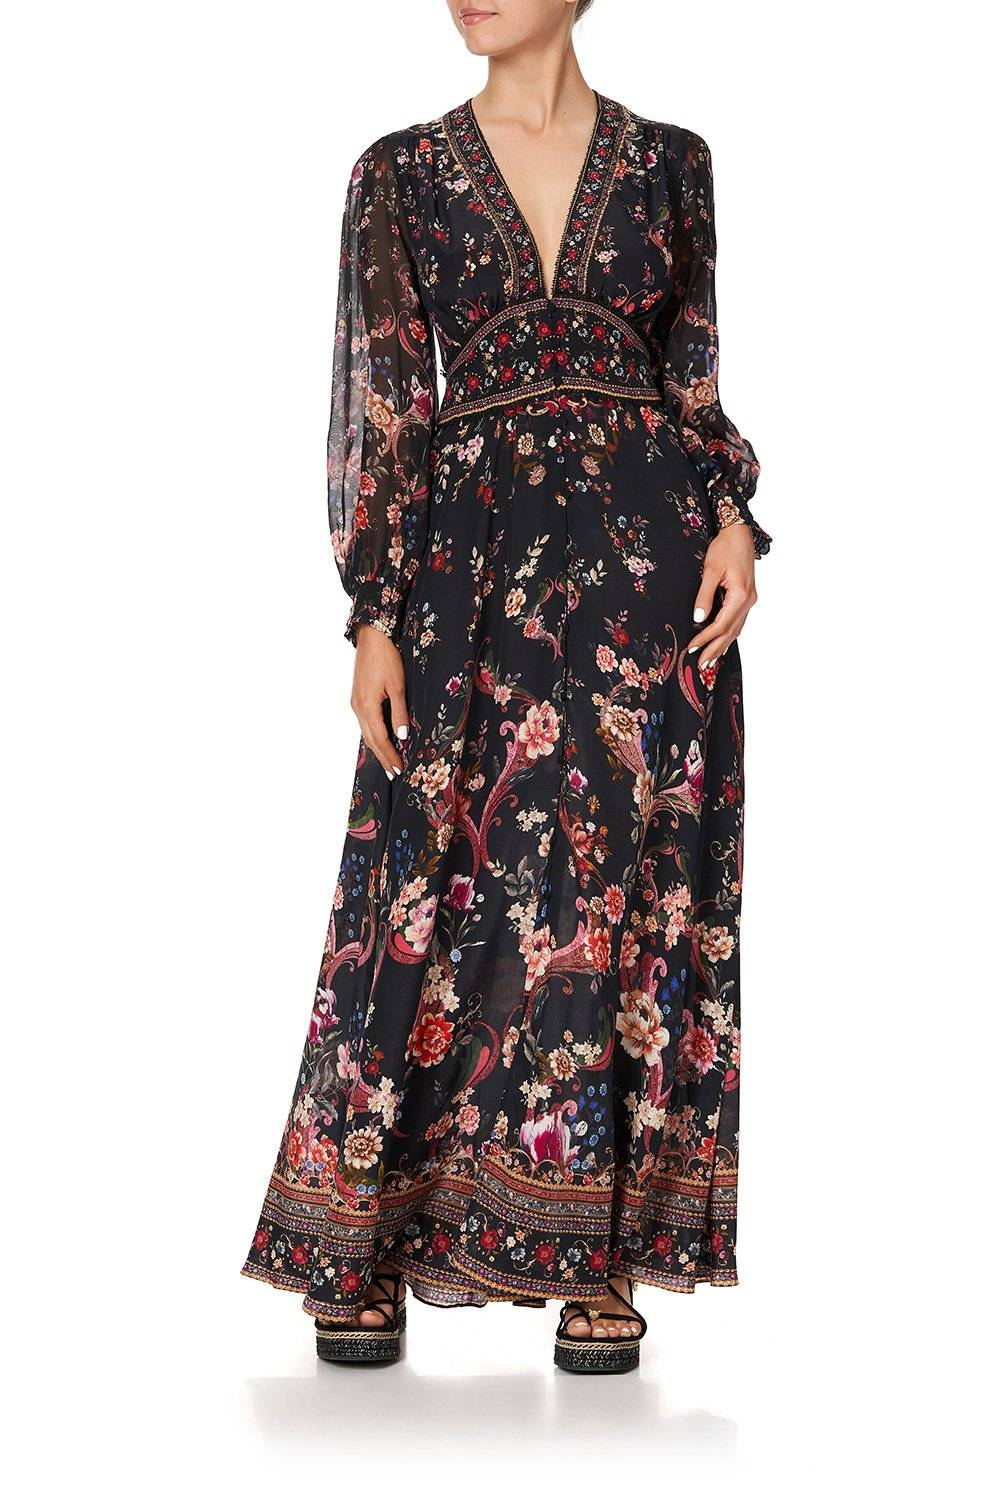 CAMILLA long sleeve button down maxi dress, black with pink florals